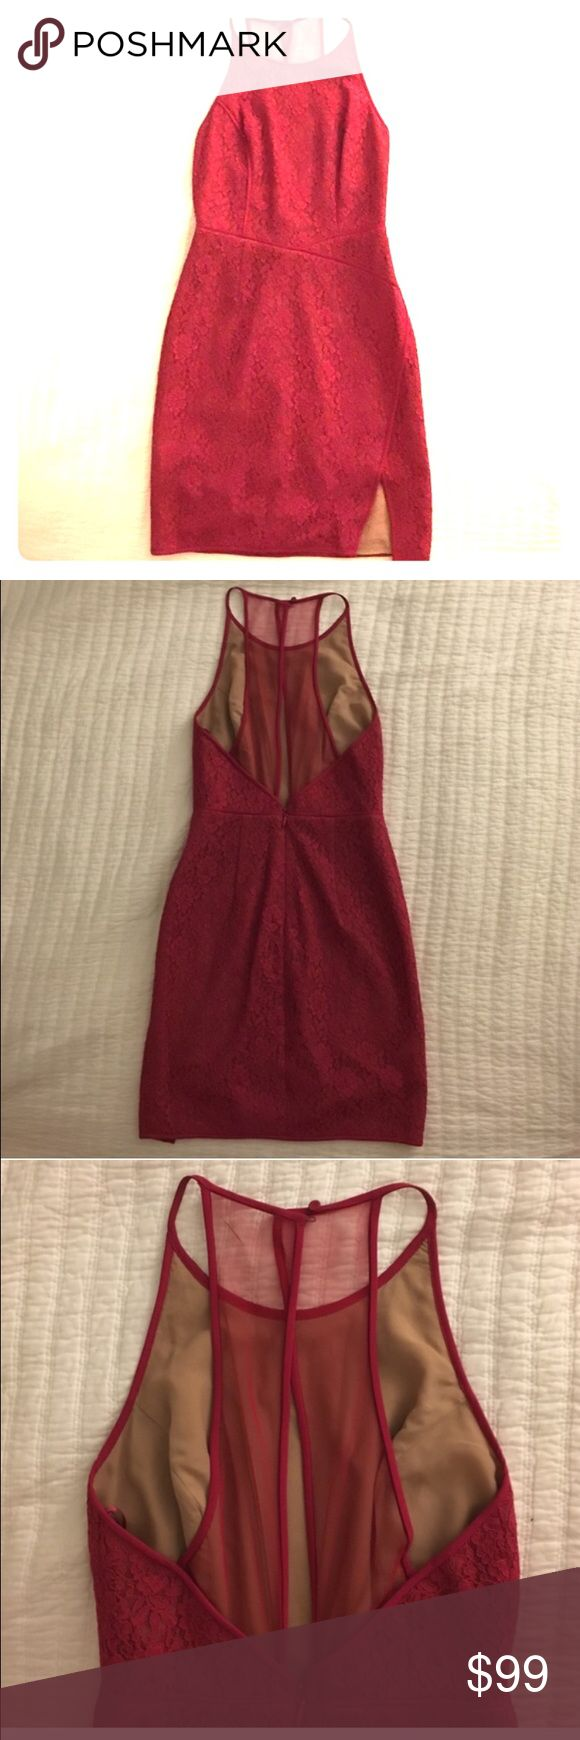 BCBG Valentines SALE❤️💐 💐JUST REDUCED! TEMPORARY SUPER LOW PRICE!!                                                                            Fushia/Burgundy lace, fully lined. Tulle peep back.  **see second listing for more model pics. In the 4th pic here I am pinching the back tighter to show how it would fit if altered to fit my size properly. BCBG Dresses